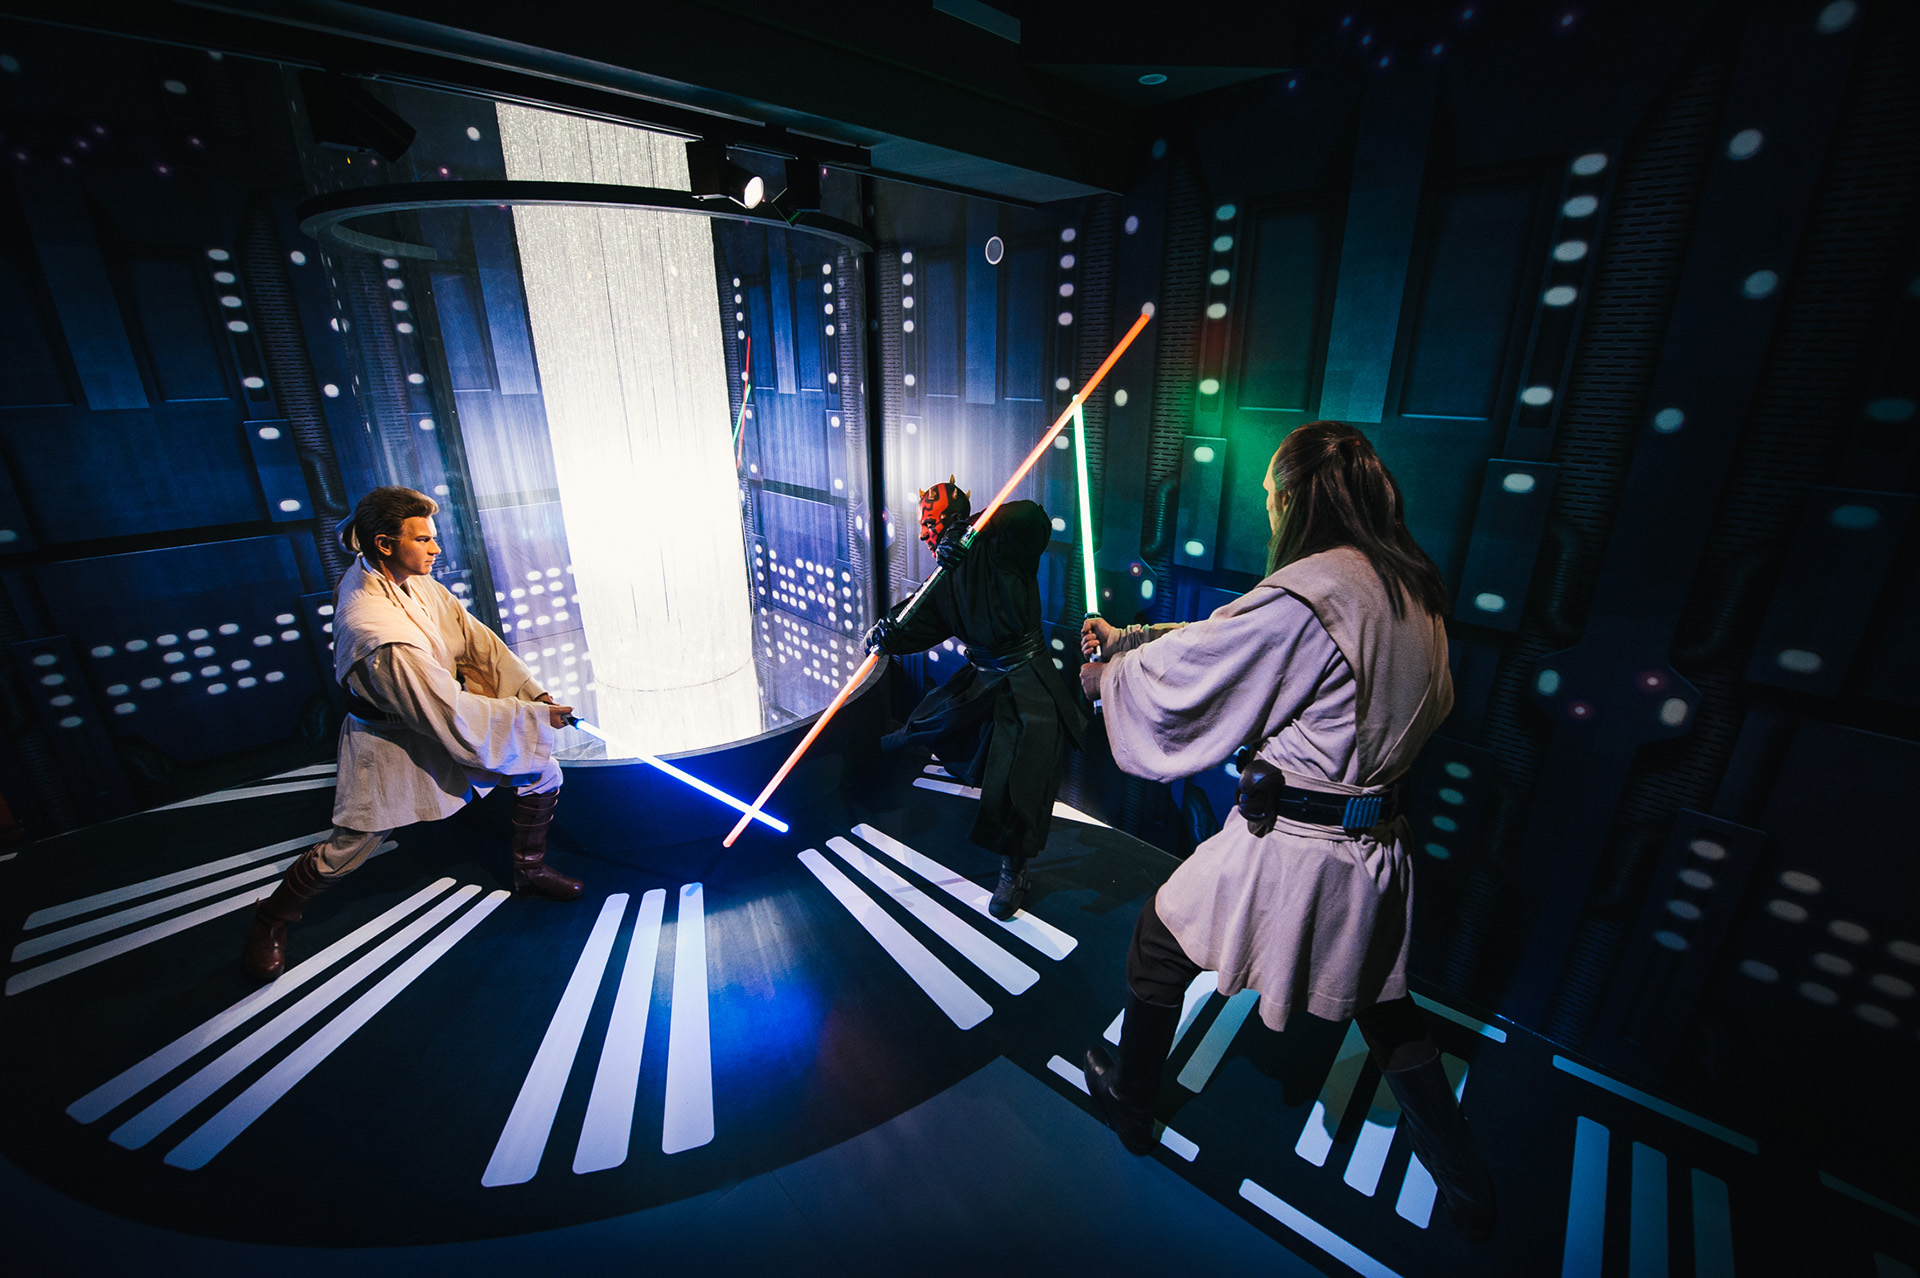 Duel Of Fates at Madame Tussauds London